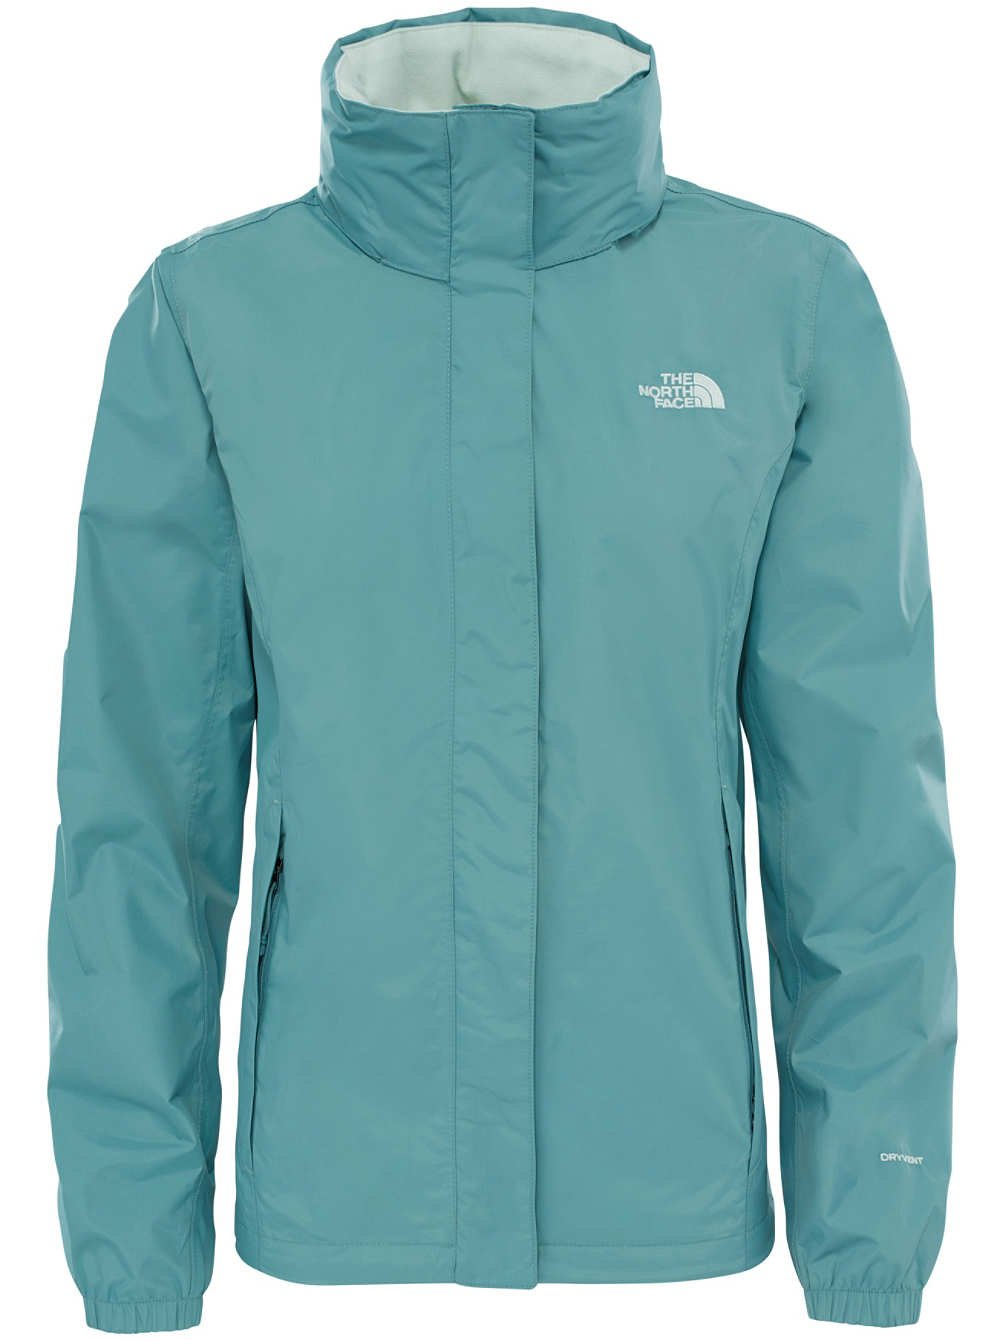 The North Face Resolve 2 Jacket (X-Small, Trellis Green)